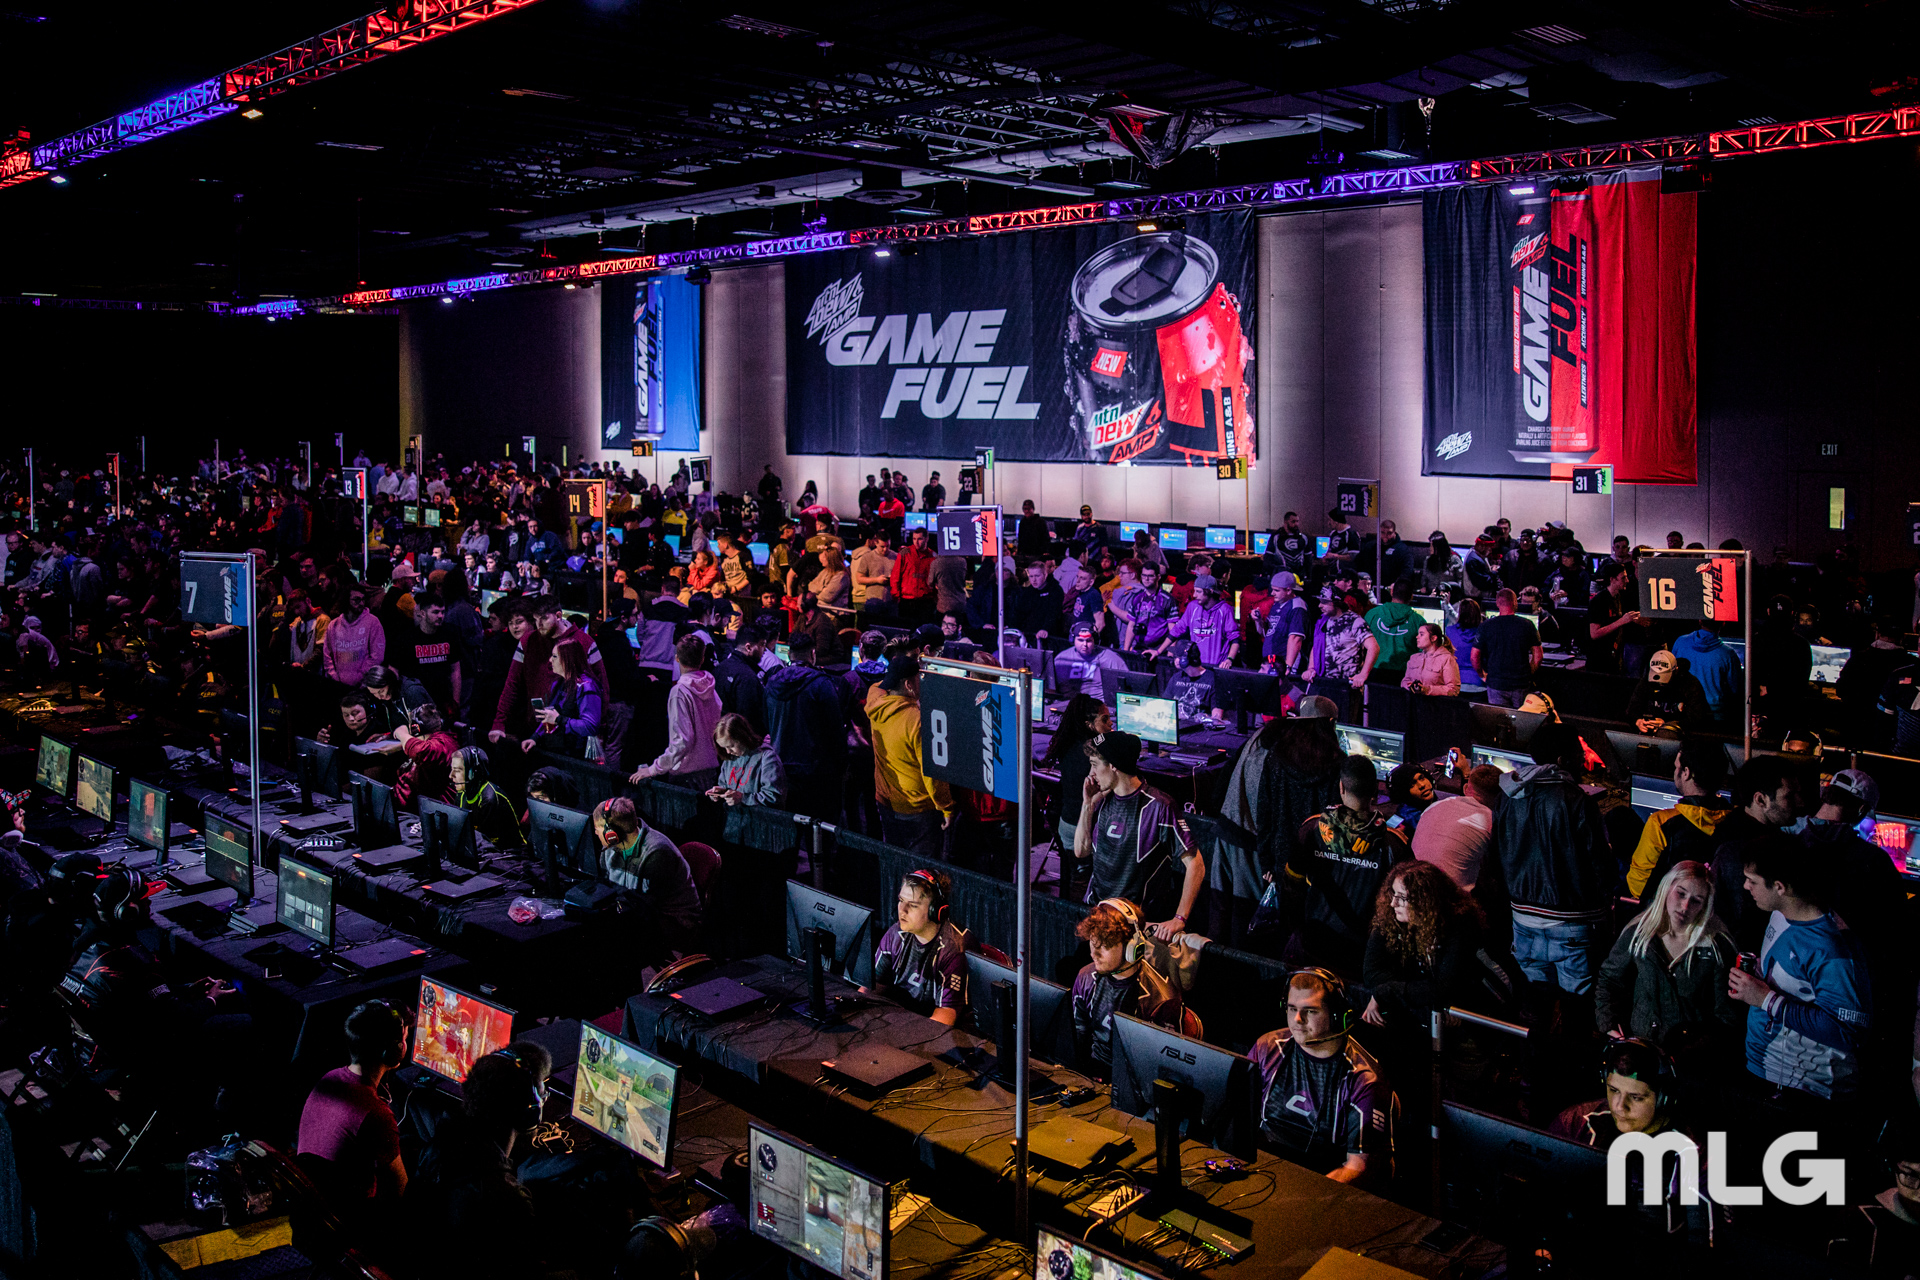 FC Black reverse sweep Mindfreak to win the CWL Fort Worth